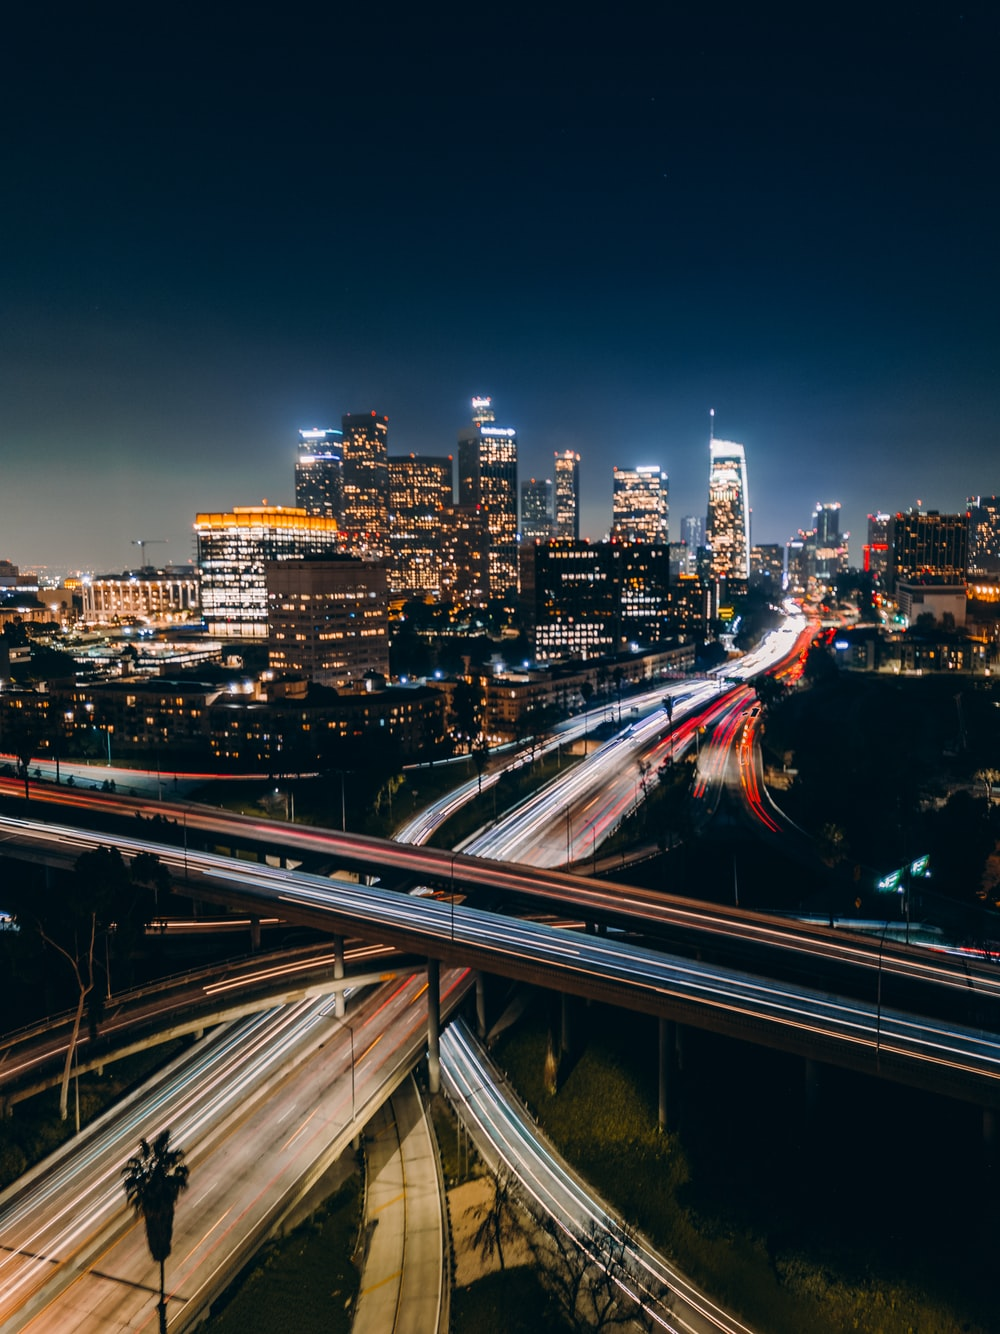 time lapse photo of cars passing by bridge during nighttime